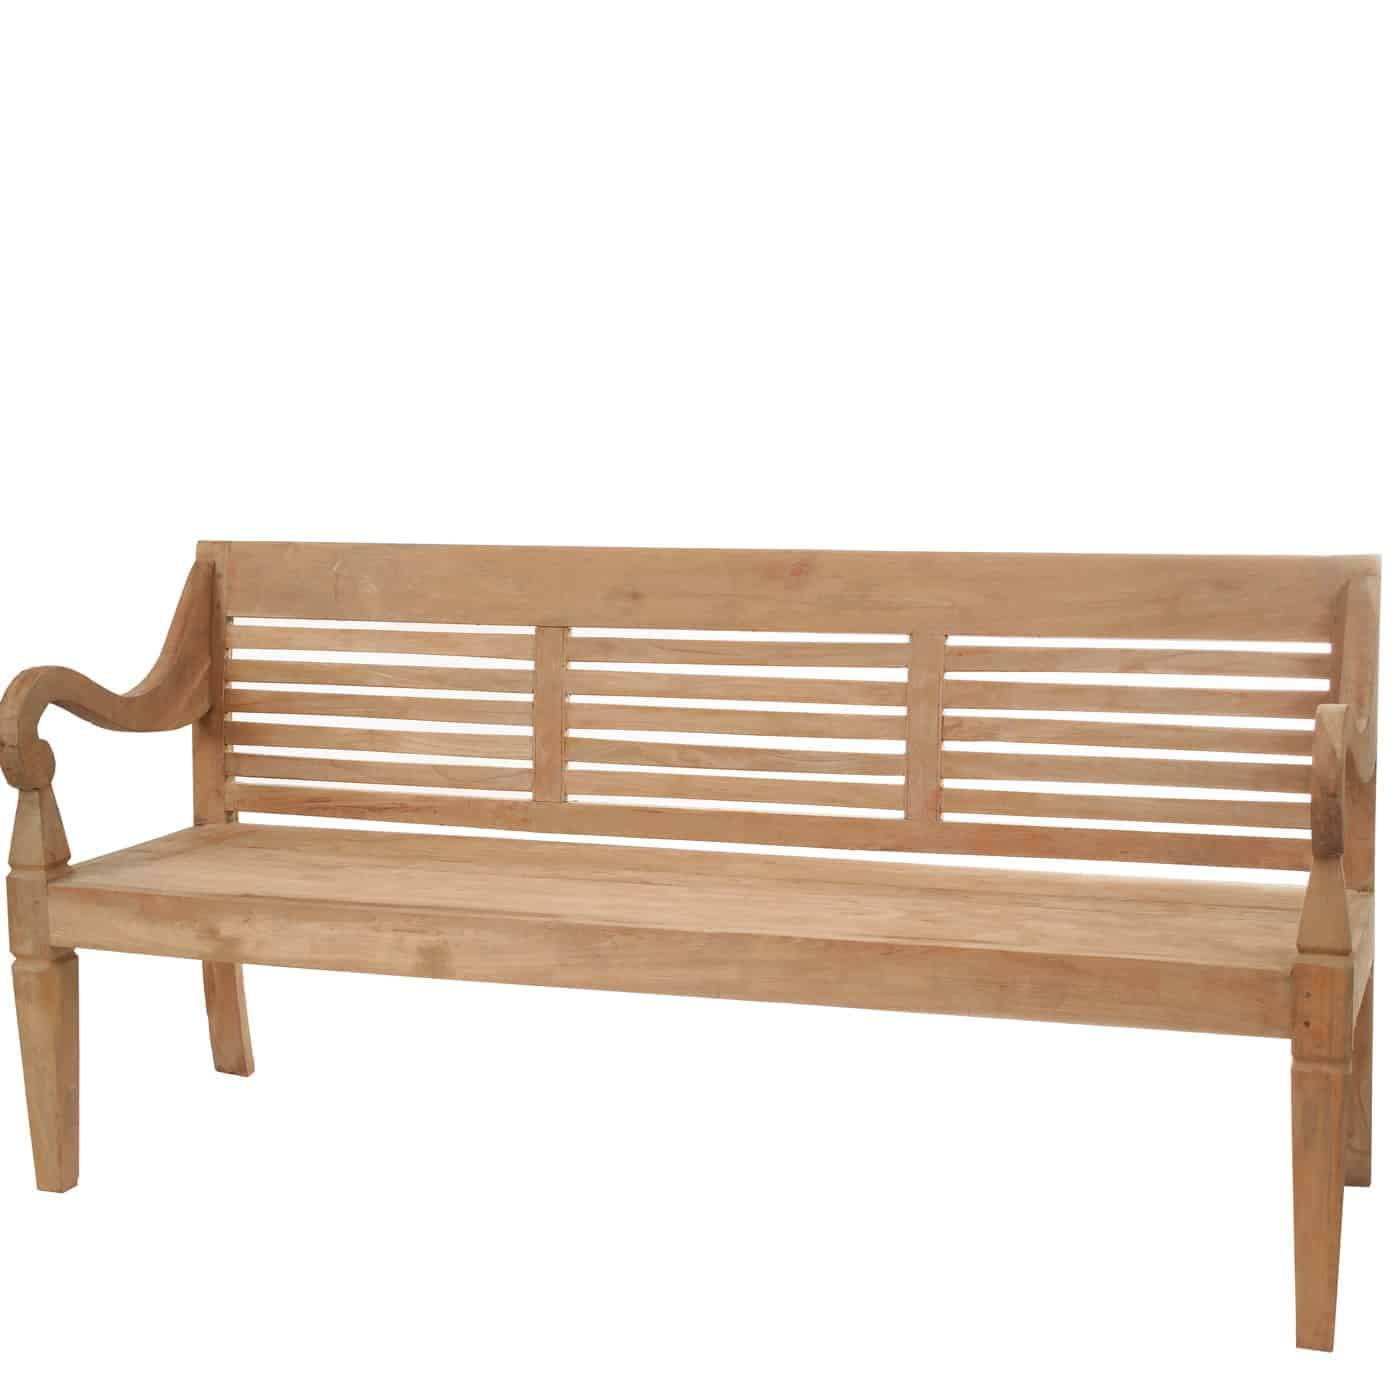 Barlow Tyrie, Faraway Furniture, Gloster Furniture And Some Of The Indian  Ocean Teak Range. Buying From One Of The Above Will Ensure You Are  Investing In ...